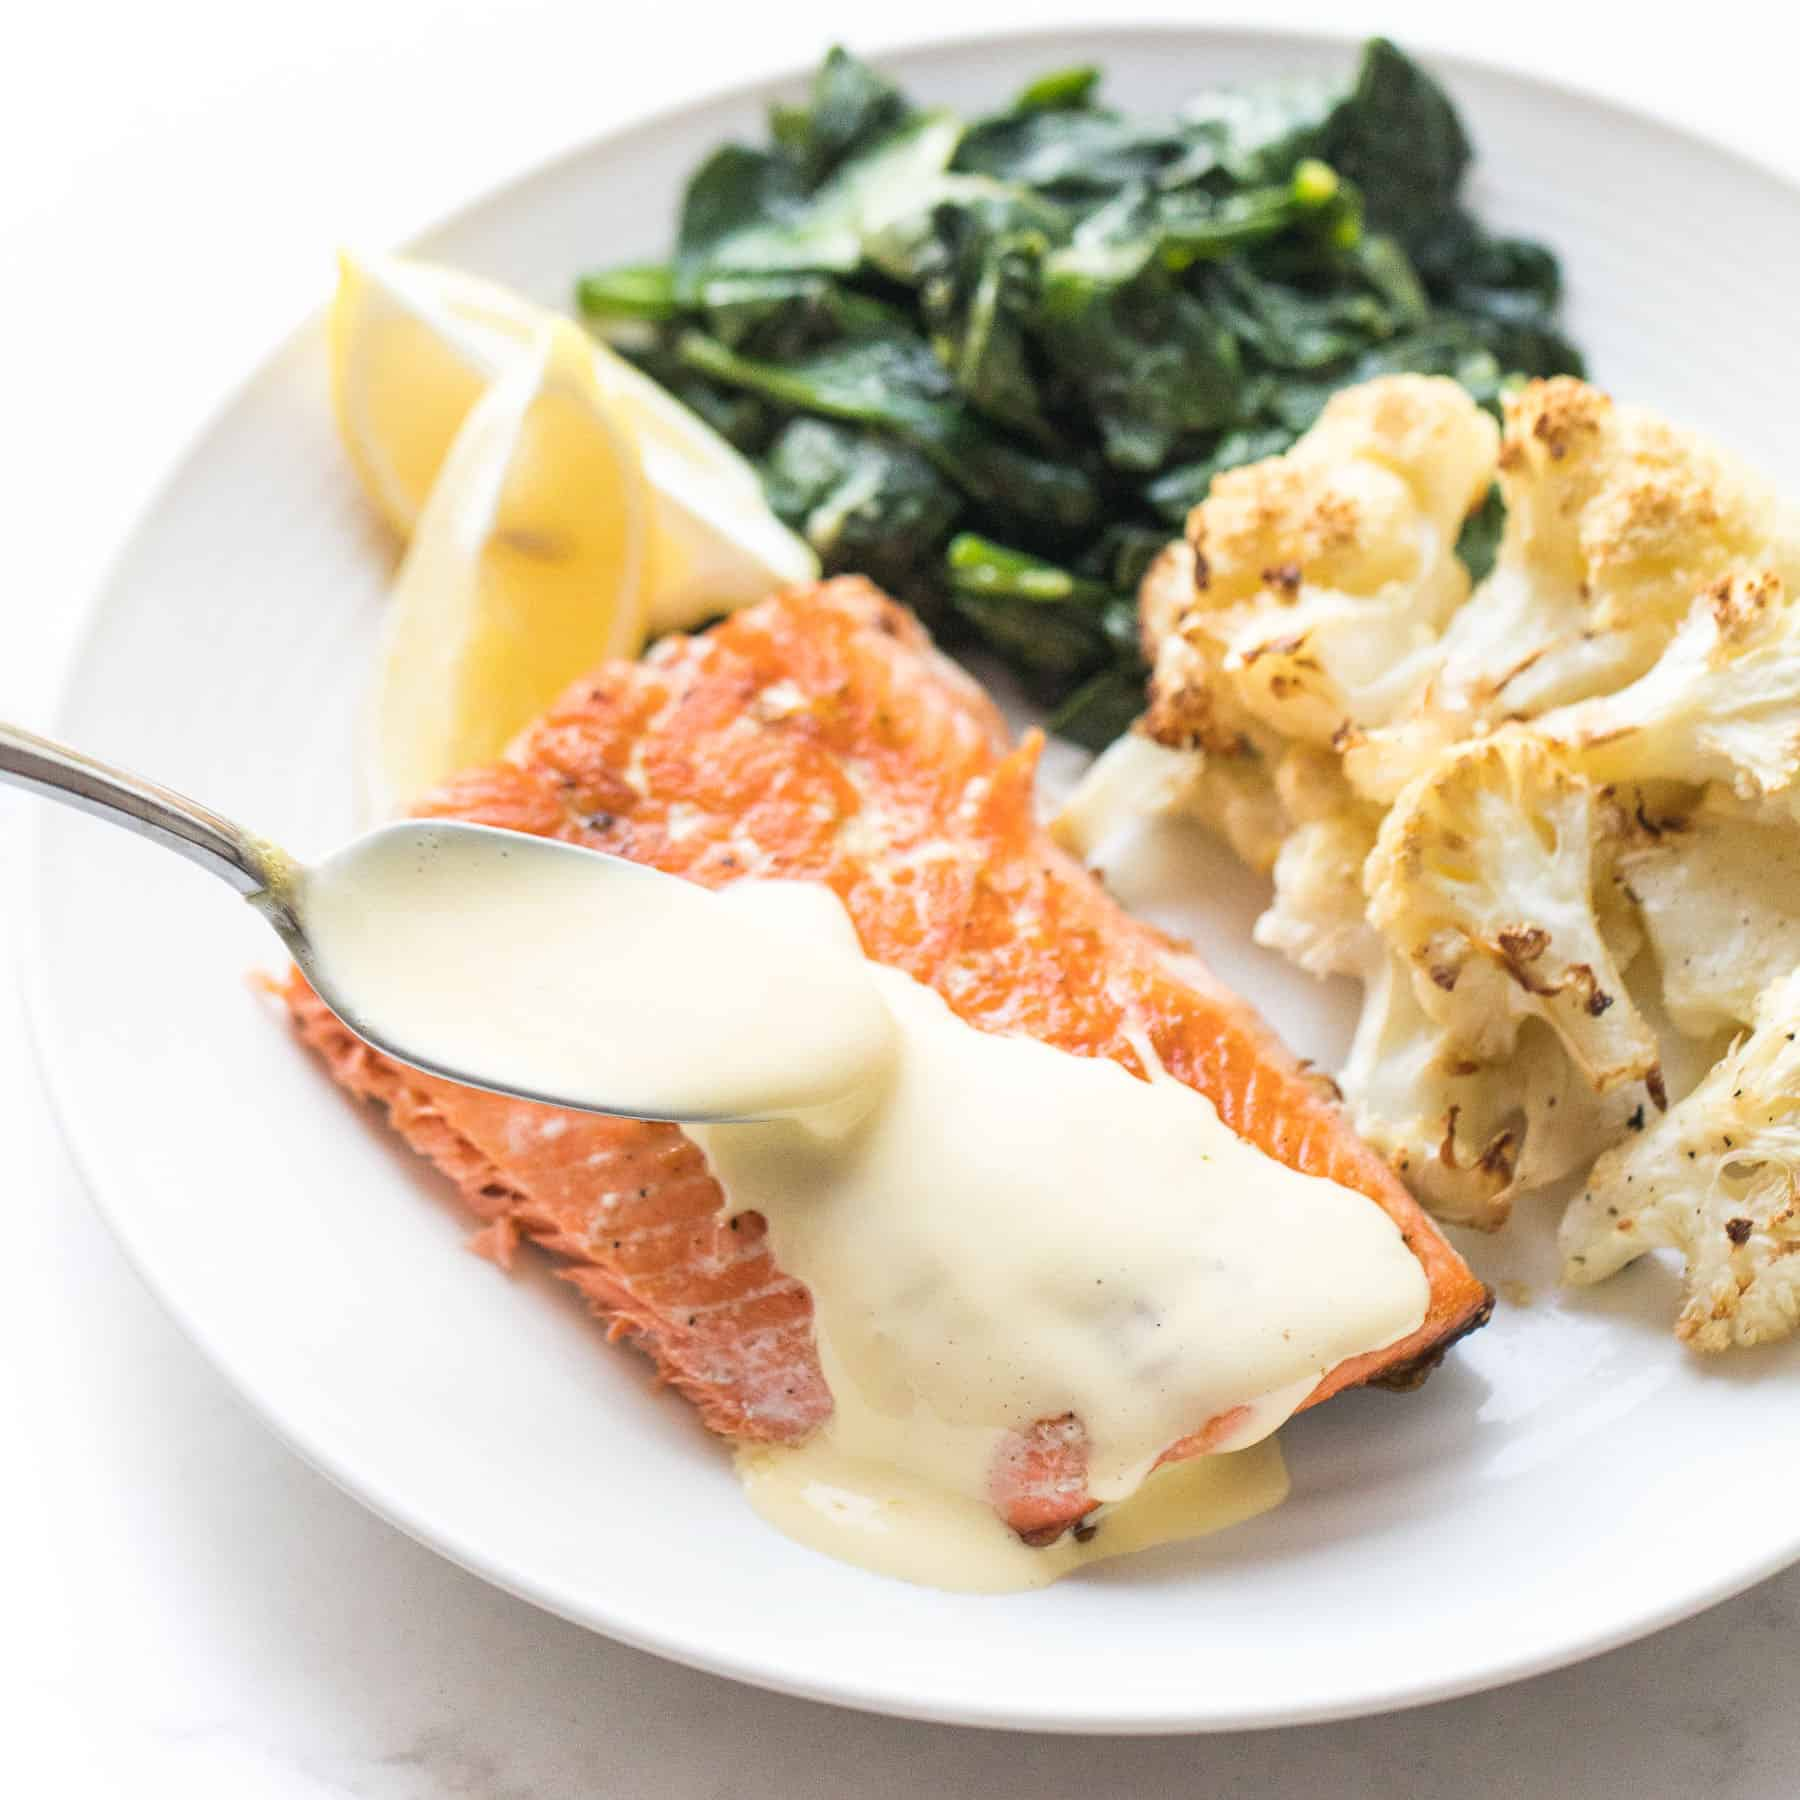 salmon with hollandaise sauce with roasted cauliflower and cooked spinach on a white plate